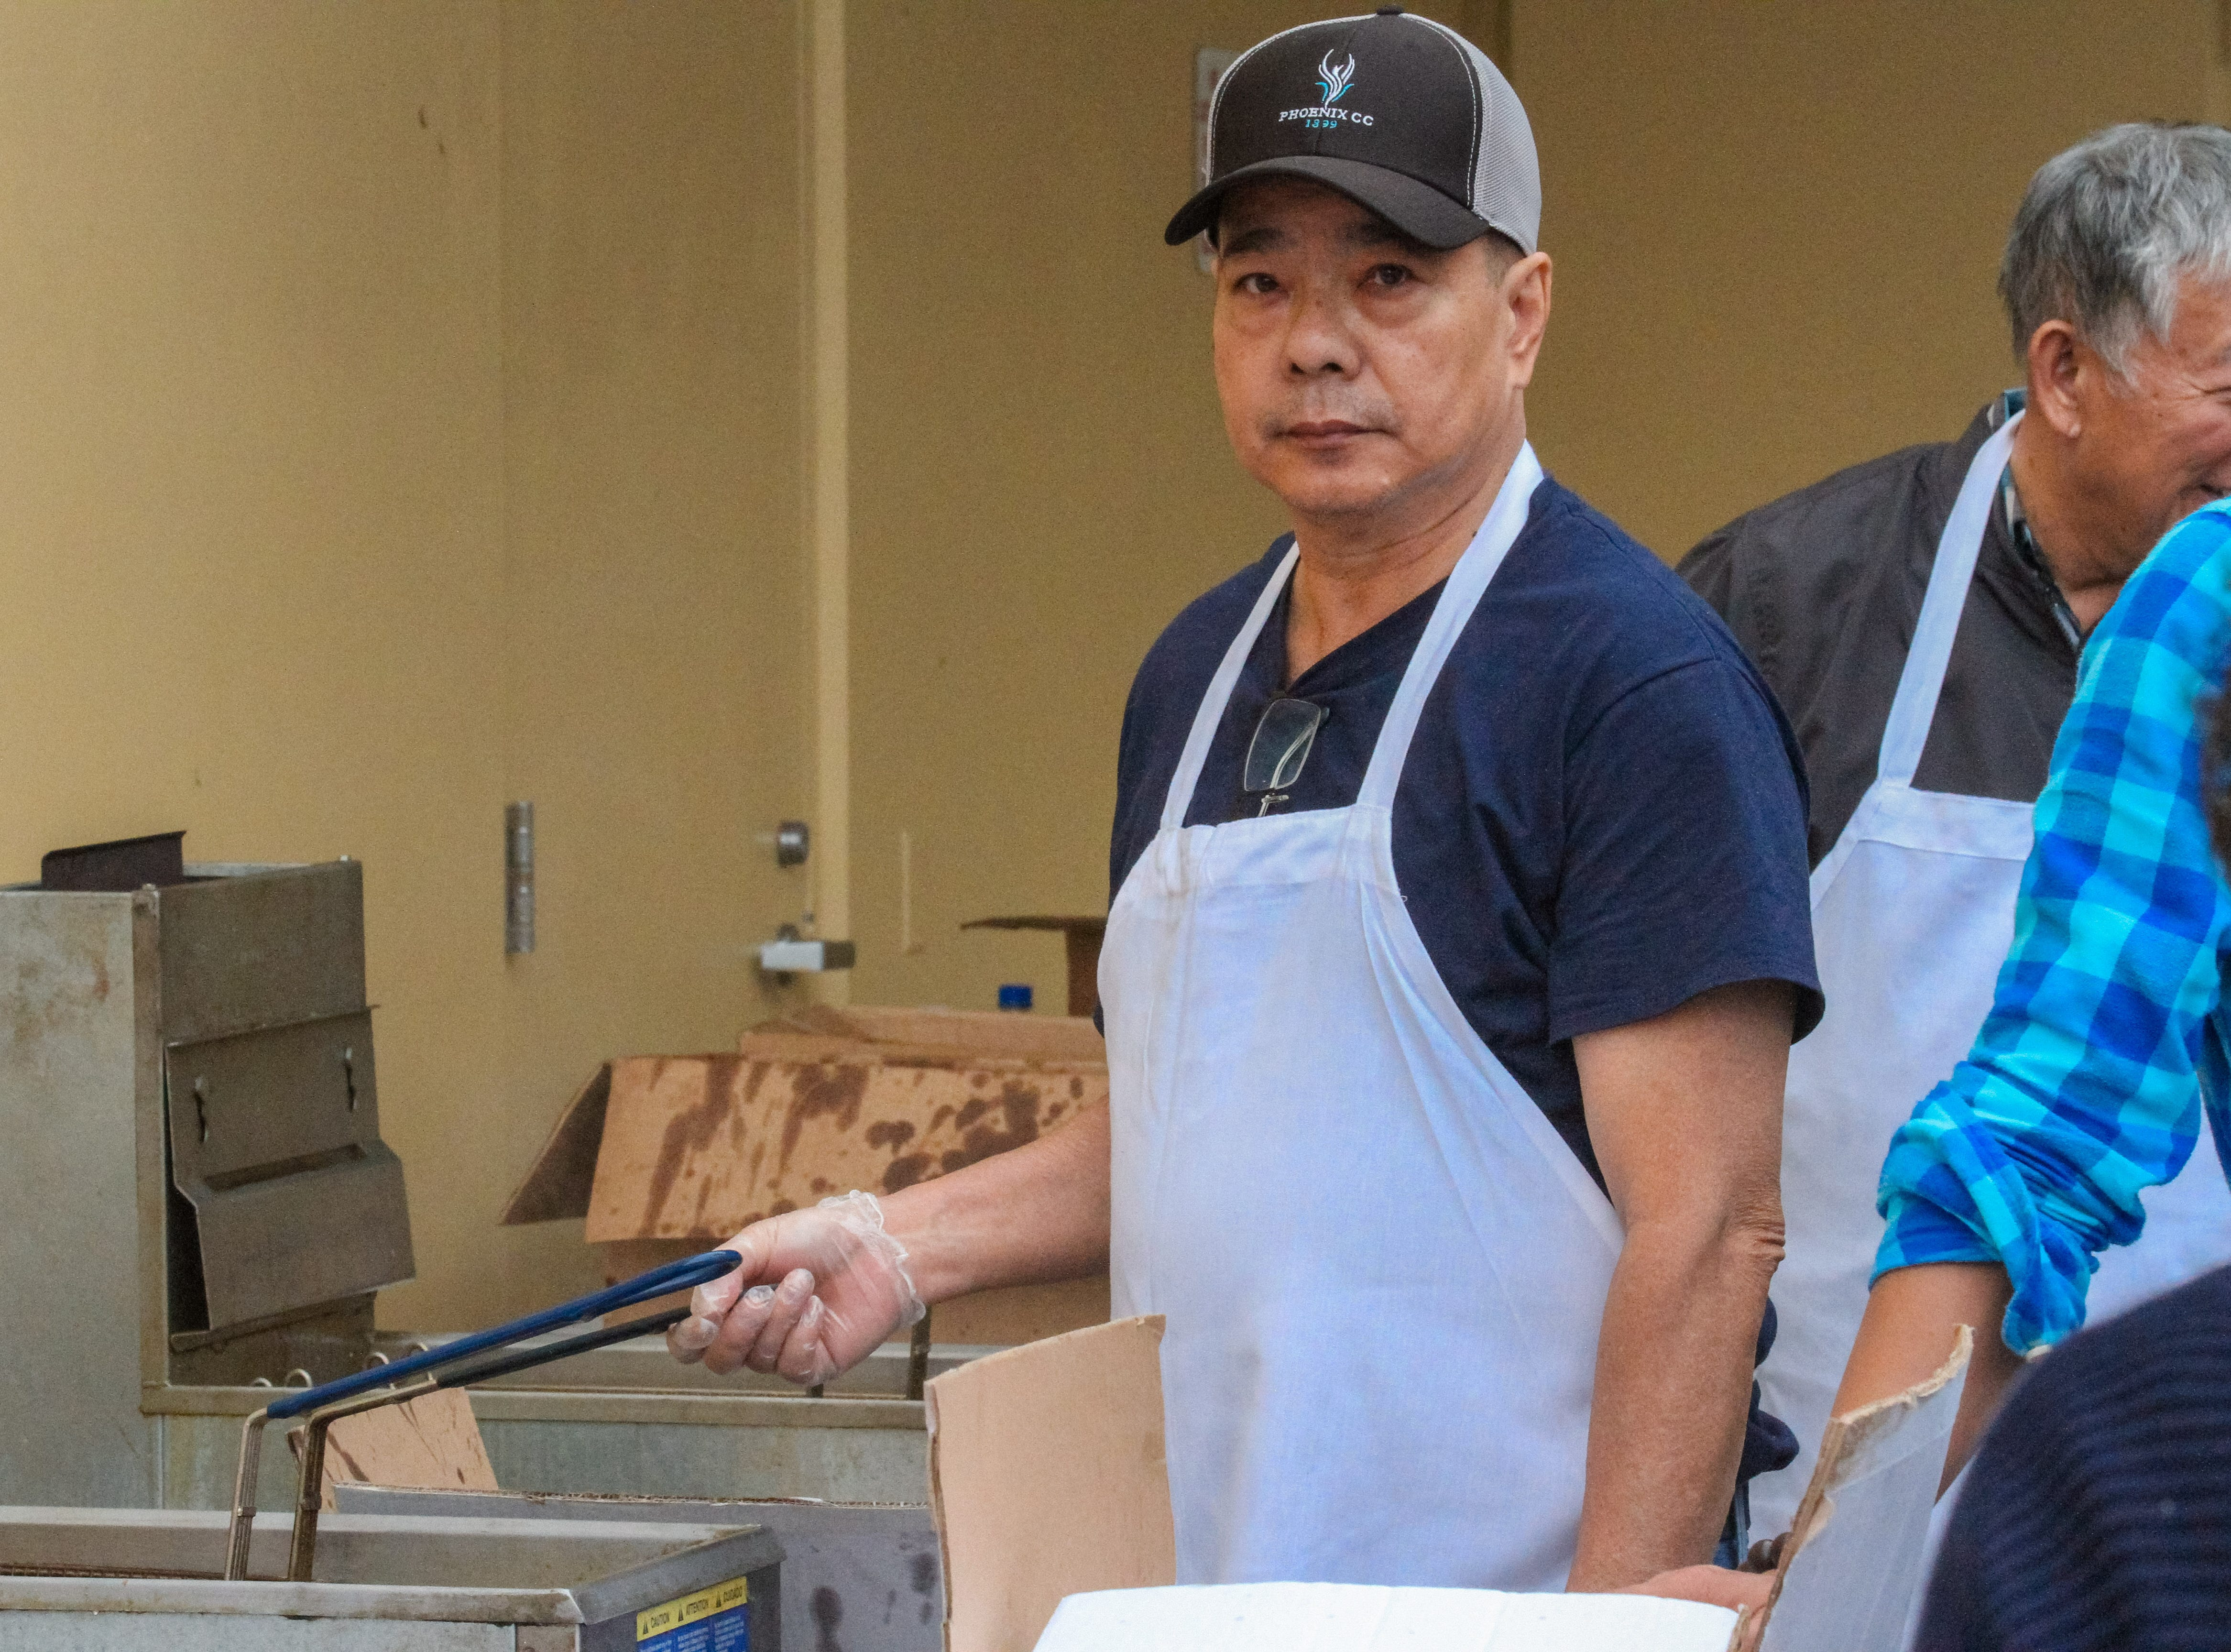 The Chinese Restaurant Association feed nearly 1,000 homeless people at CASS and Human Services Campus as part of the Lunar New Year Celebration in Phoenix, Arizona On Saturday, Feb. 2, 2018.